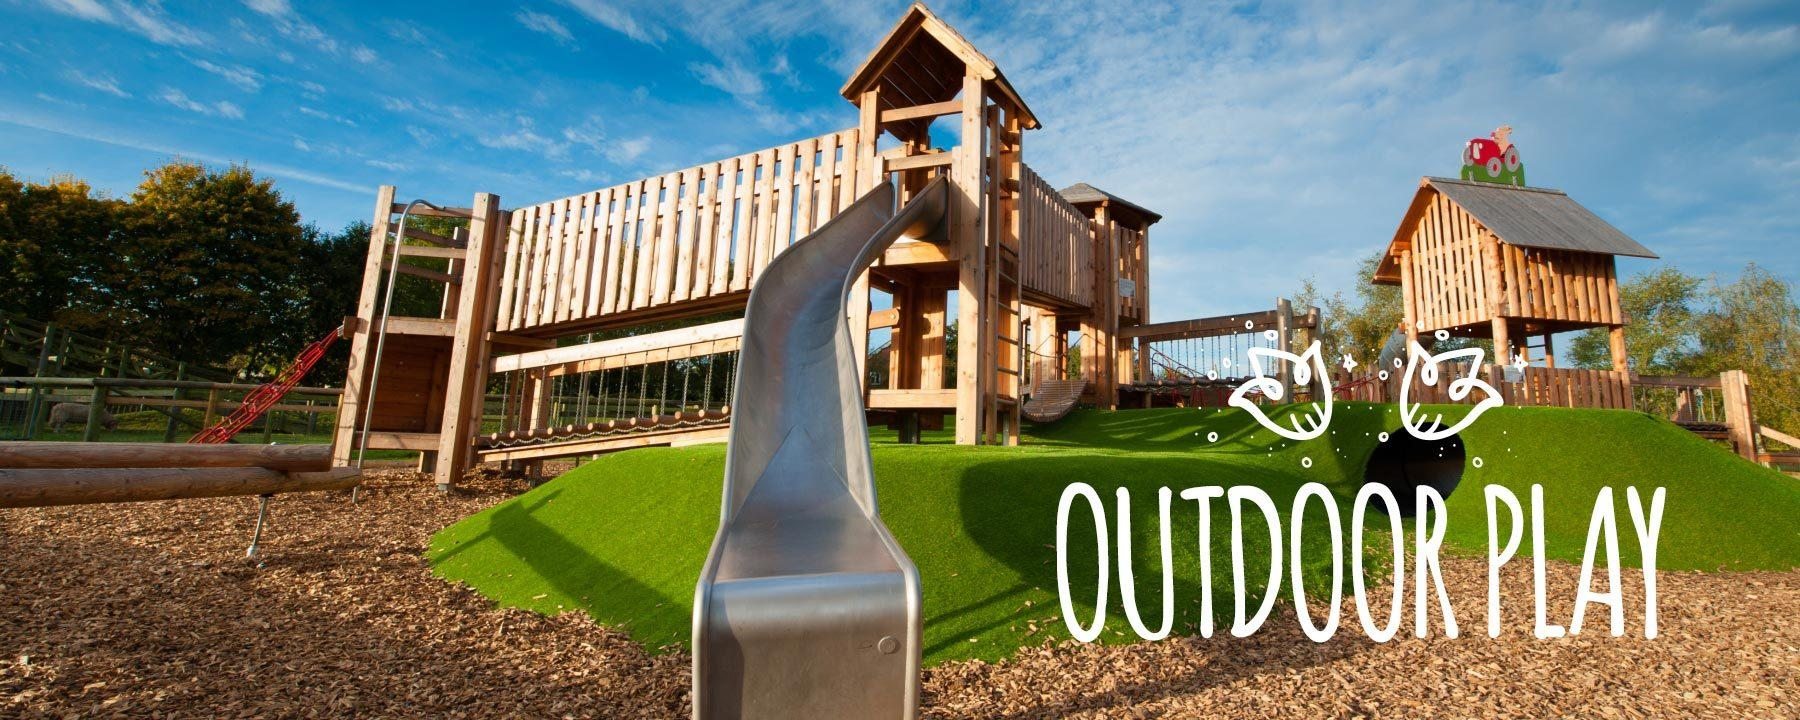 Outdoor Play 80